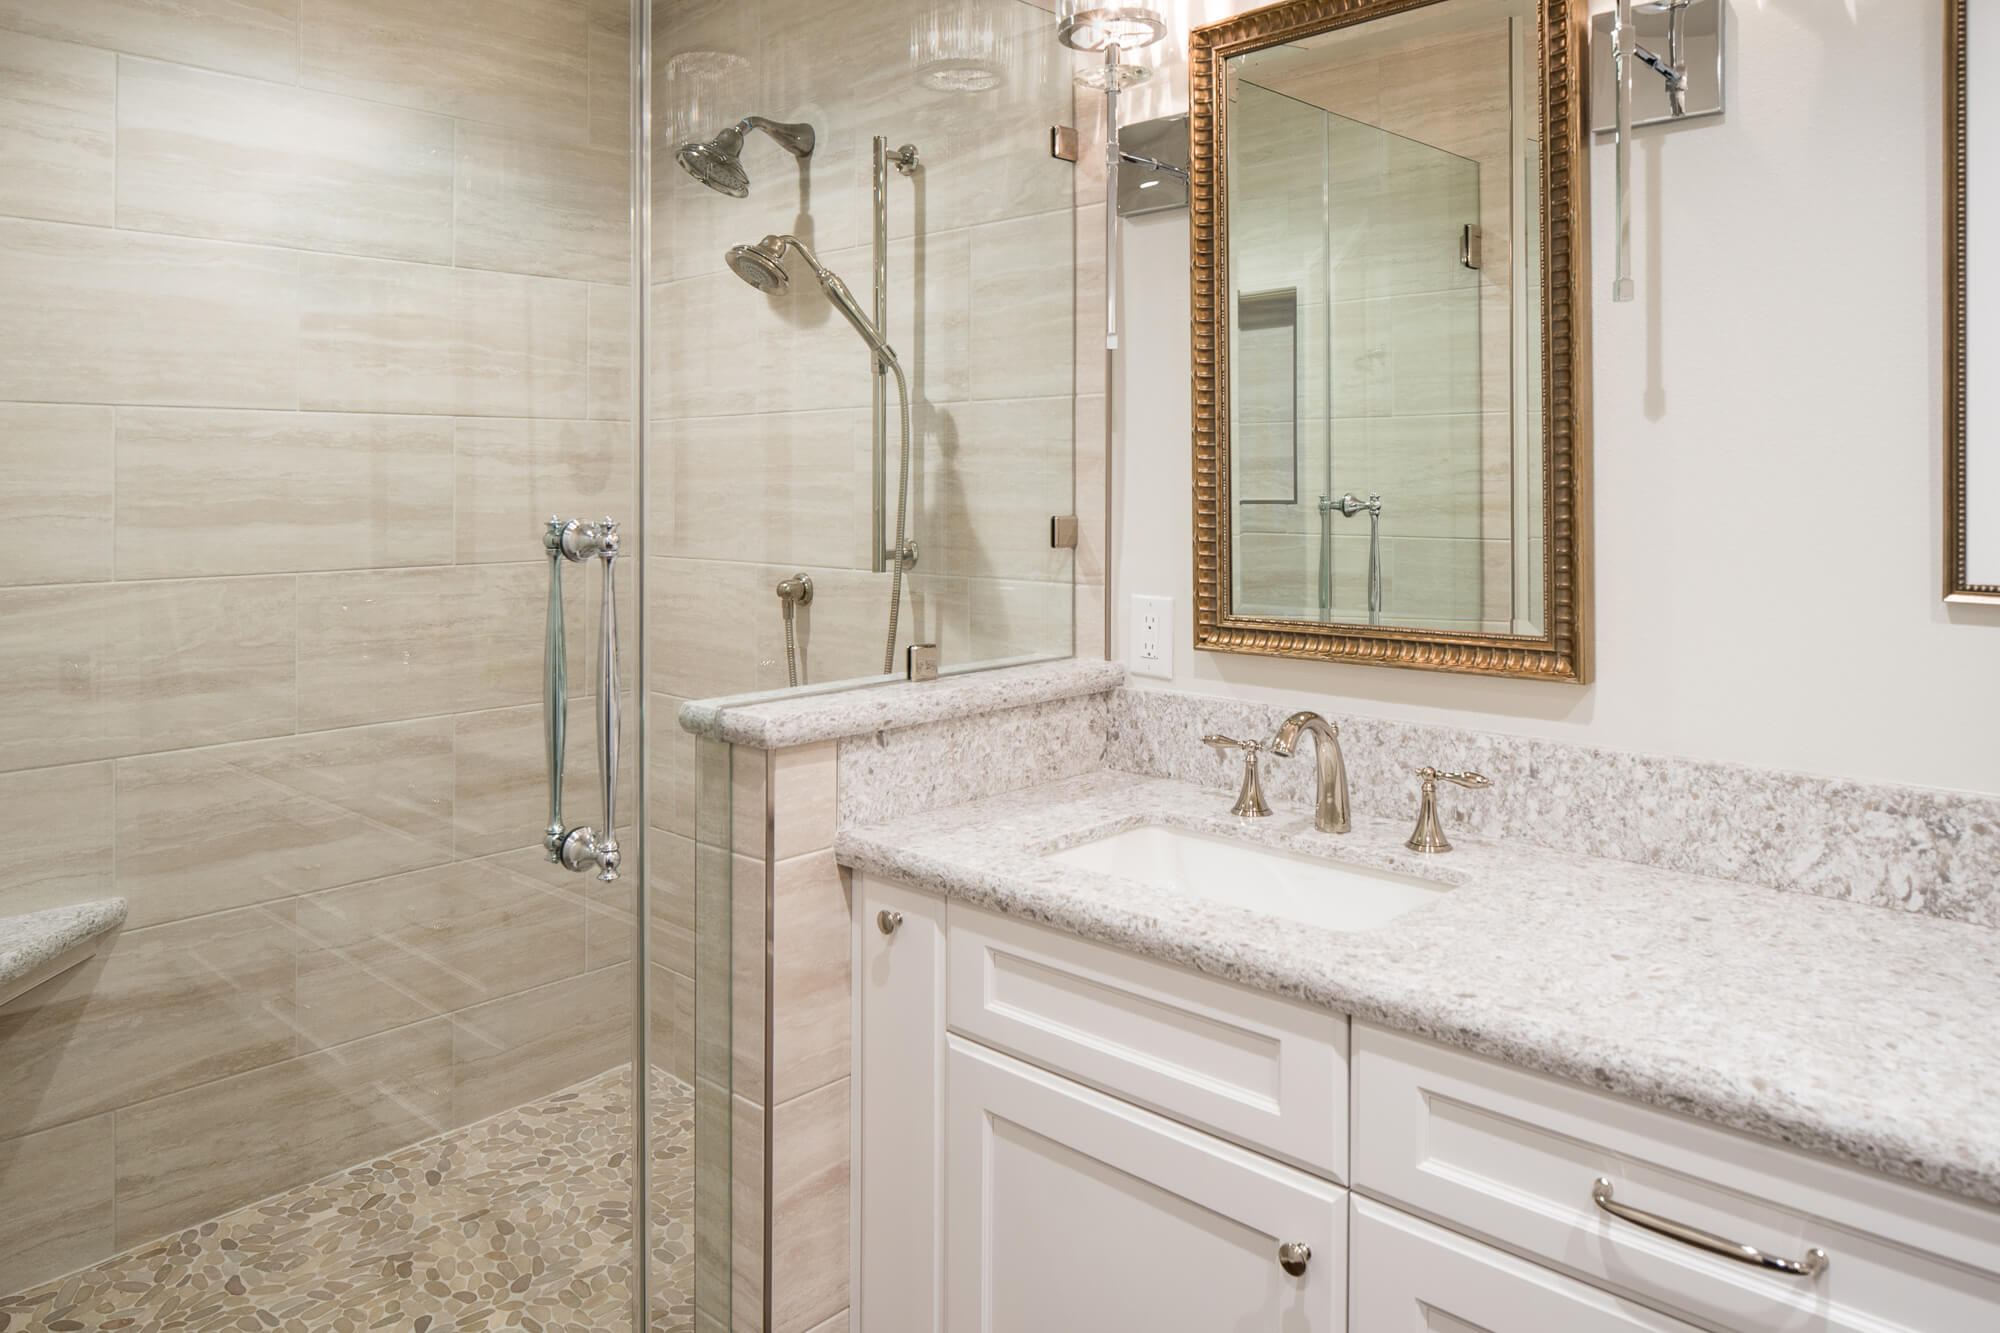 Bathroom Remodel Design Guide : Bathtubs, Showers & Sinks